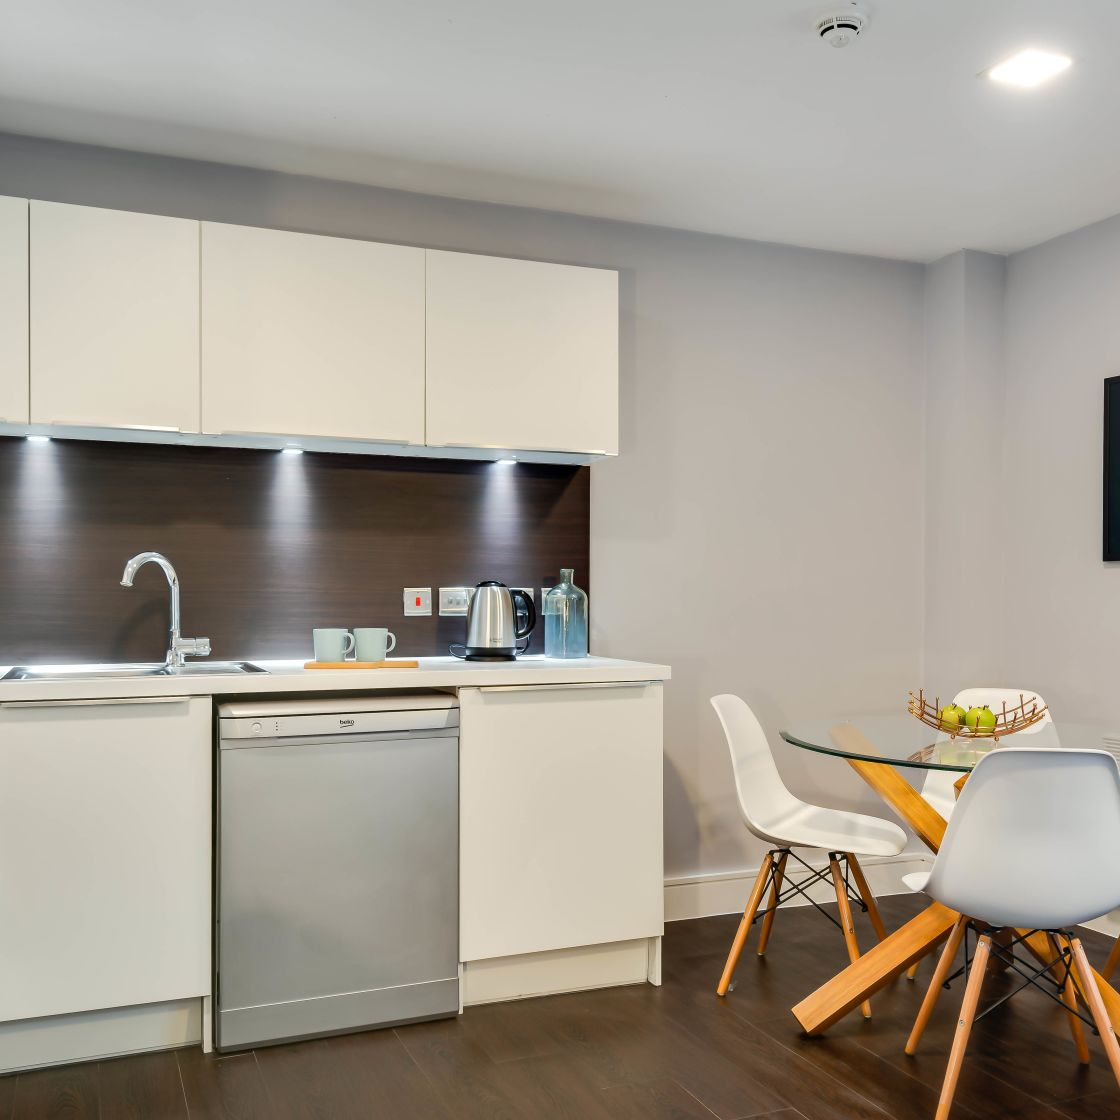 Grande Student Apartment in Leeds. Kitchen with dishwasher and dining table IconInc, The Edge,